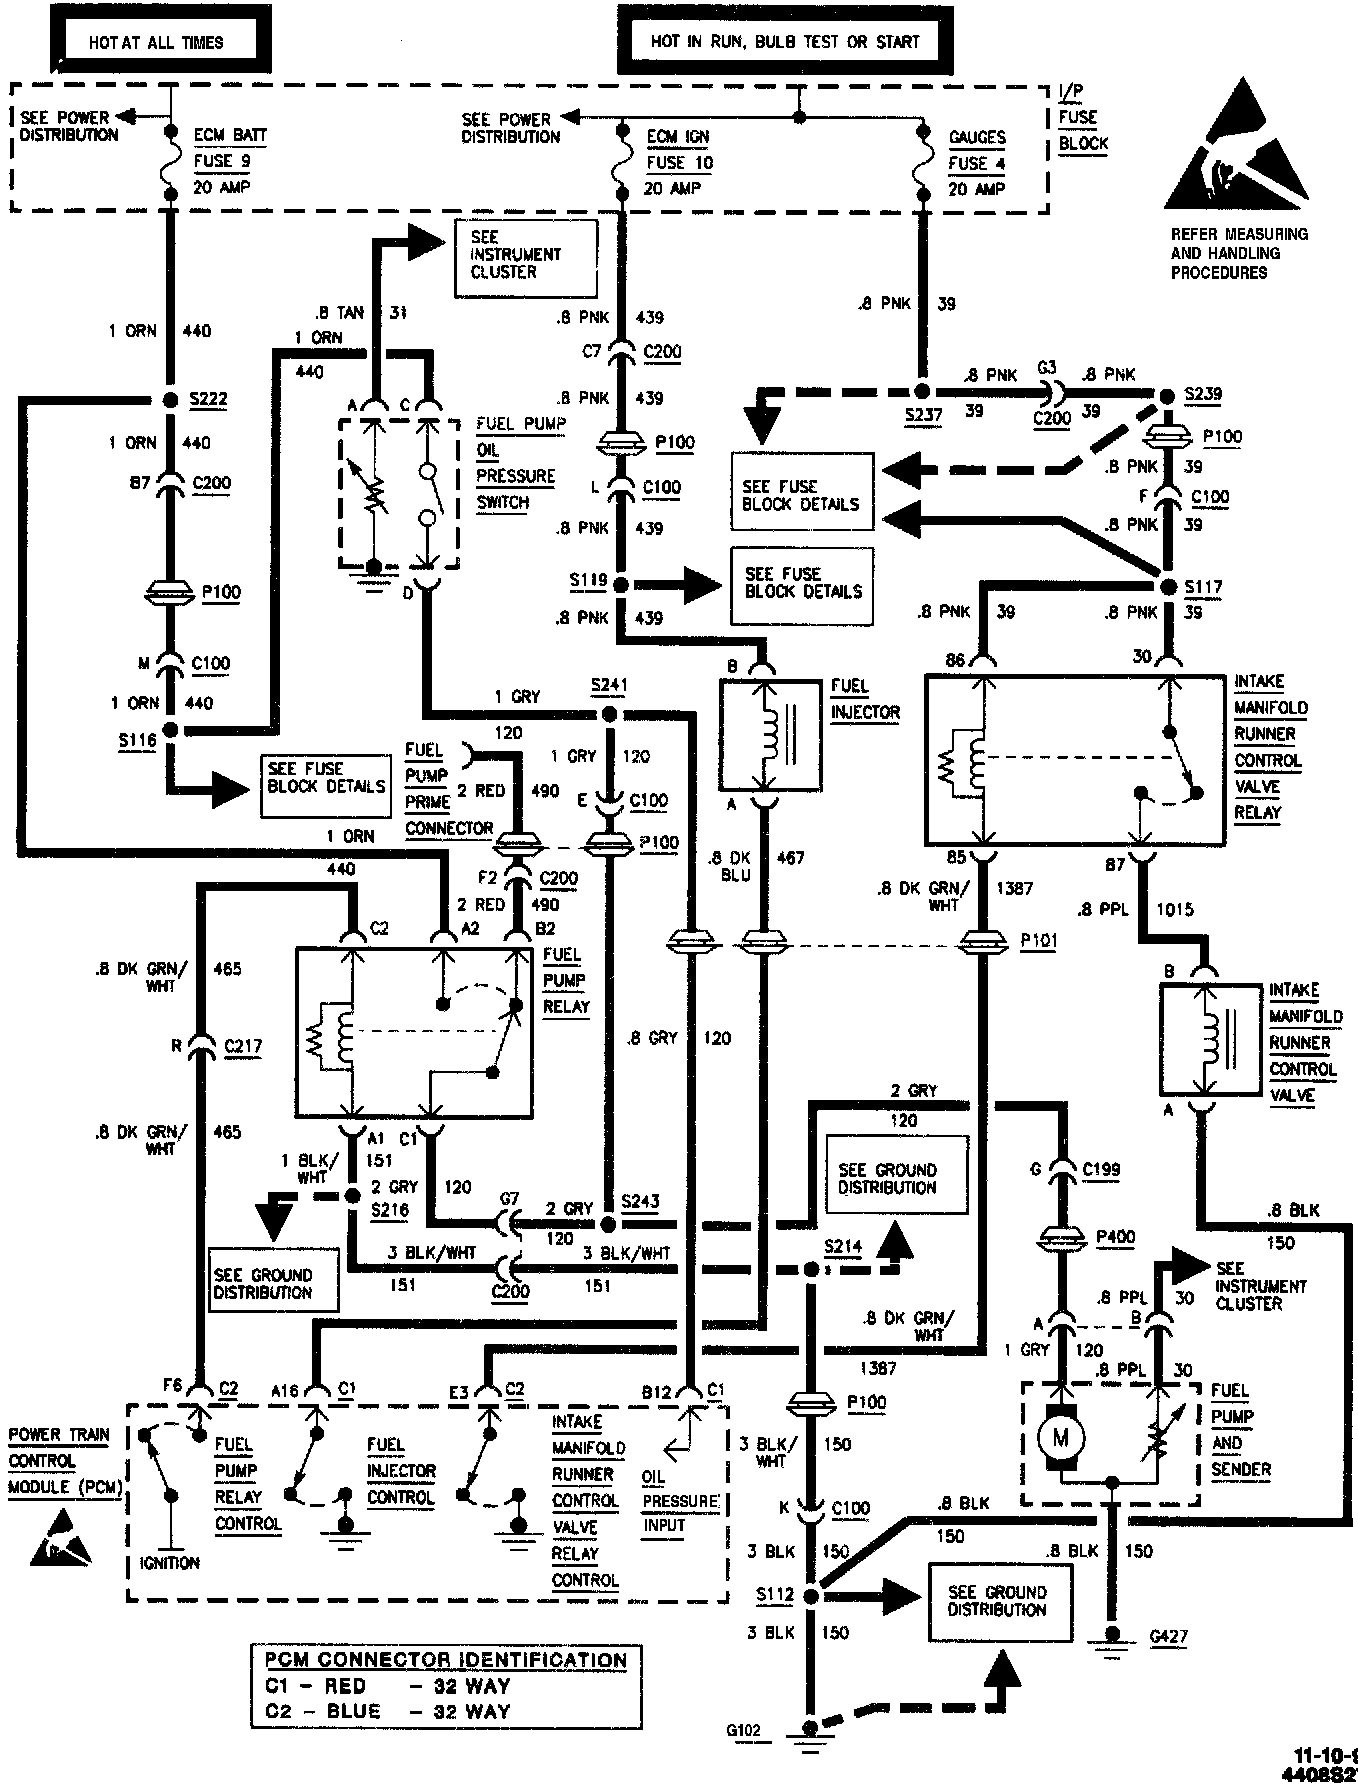 1997 Chevrolet Suburban Wiring Diagram Gm Tilt Steering Column Wiring Diagram Schematics Source Yenpancane Jeanjaures37 Fr